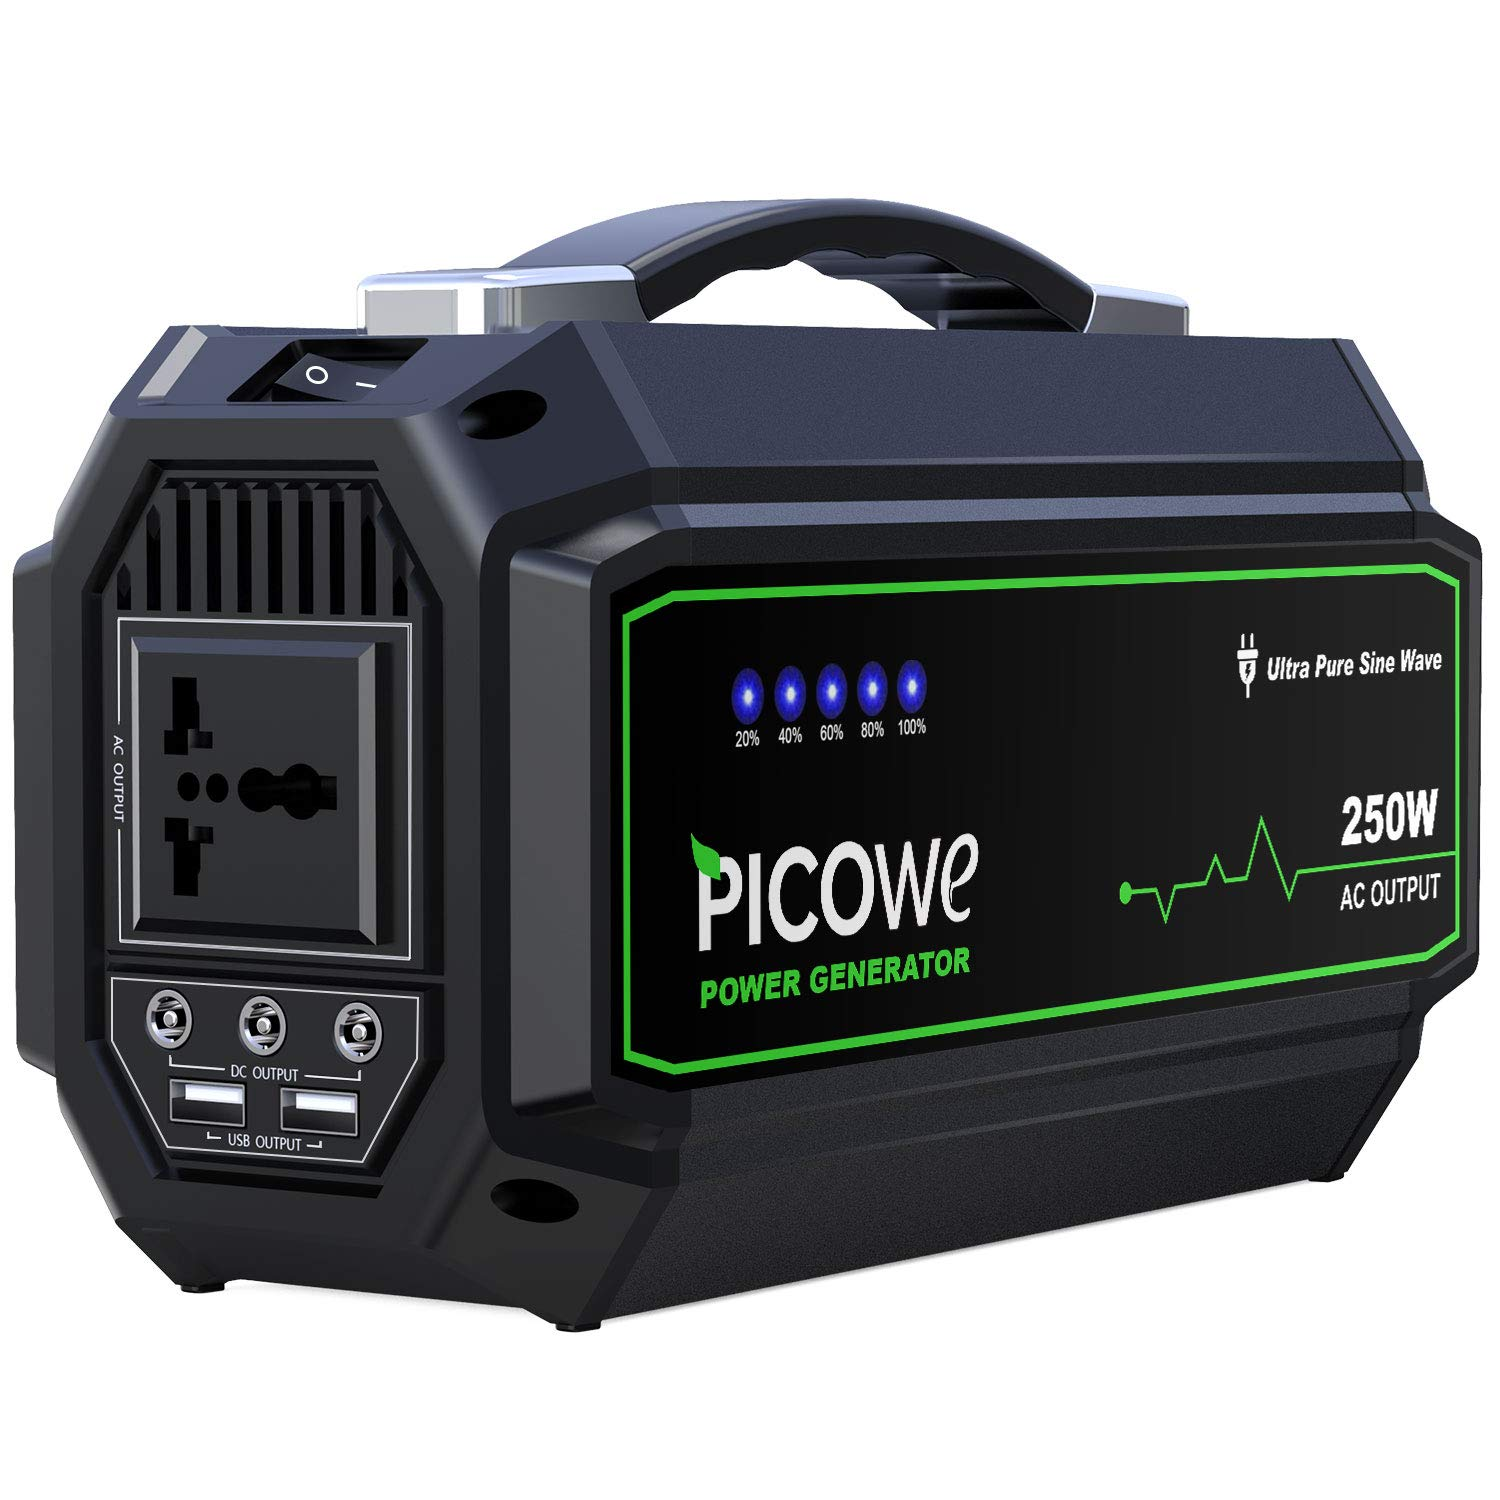 Picowe Portable Power Station 250W Rechargeable Lithium Battery Pack Power Generator 110V AC Outlet 3 DC Port 2 USB Ports Emergency Power Supply Backup for CPAP Camping Fishing Travel